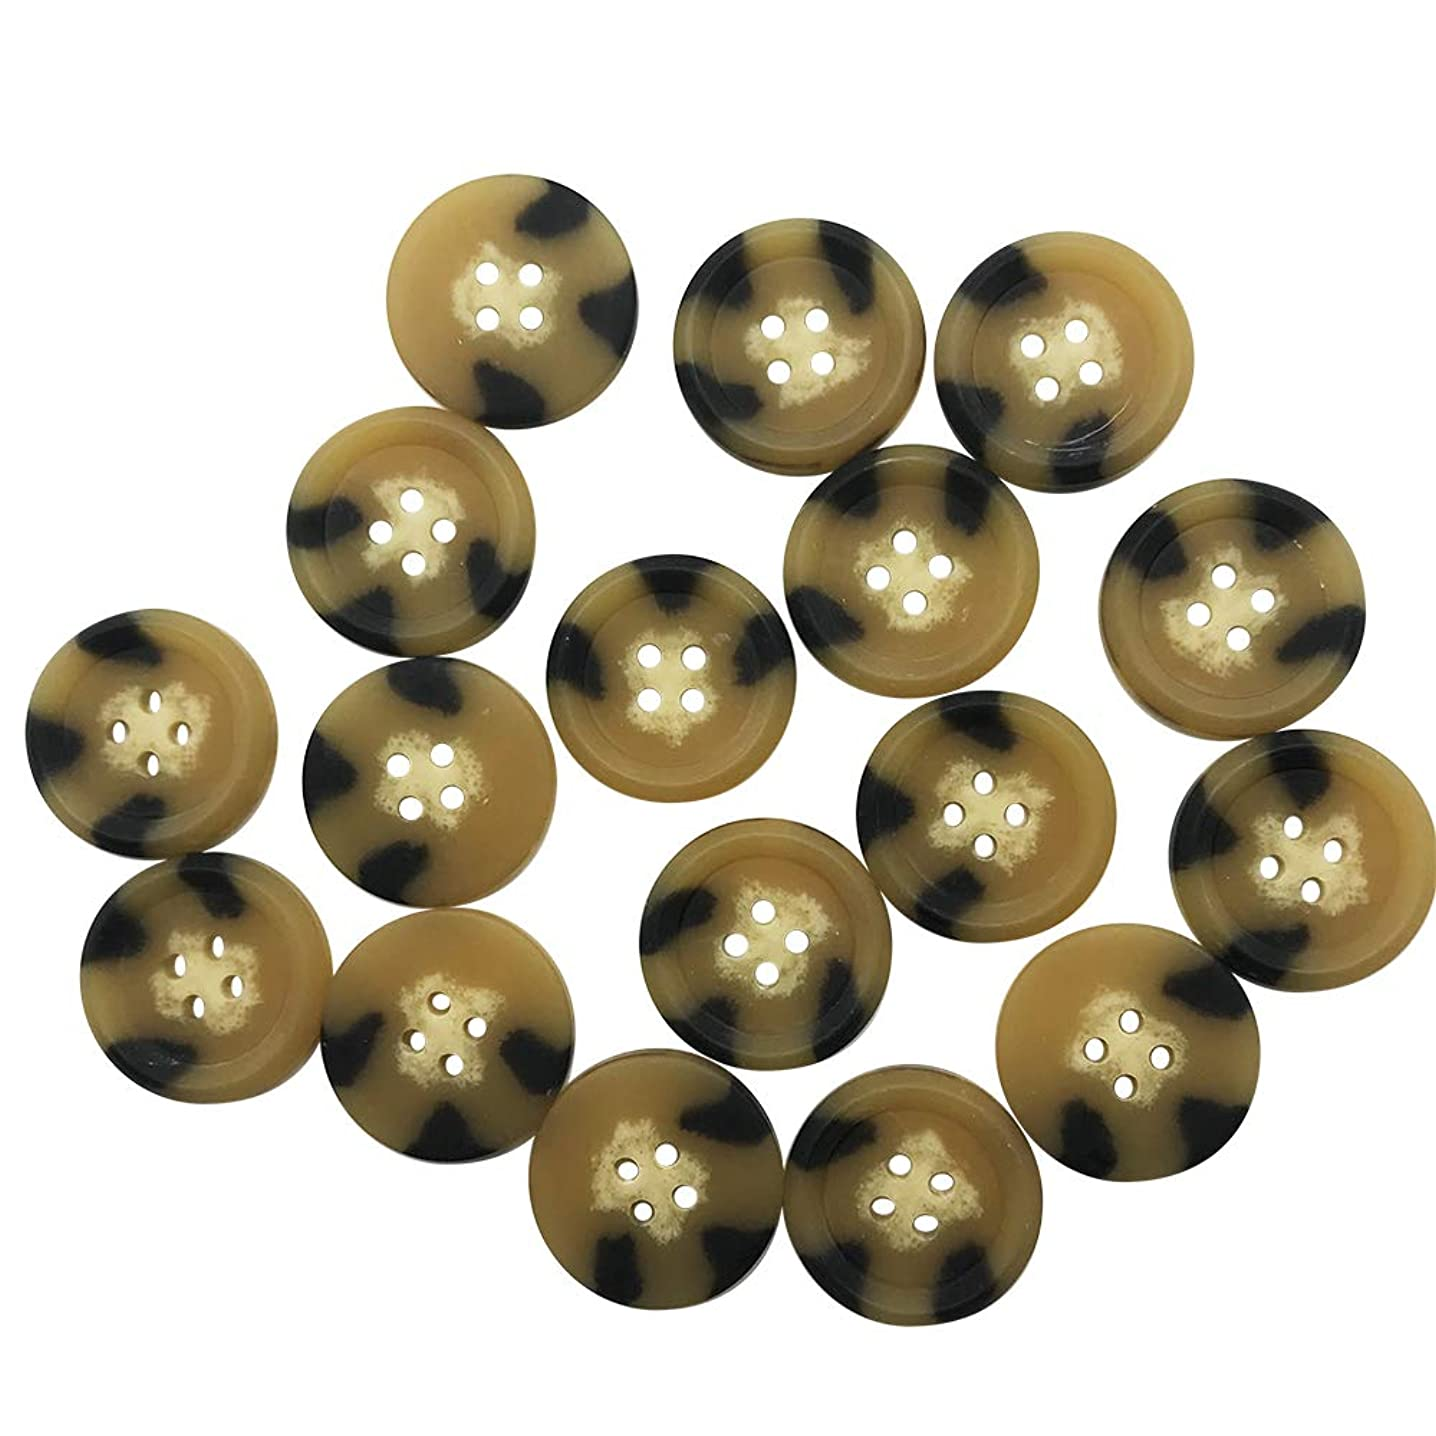 PETMALL 20pcs 30mm Buttons/Coat Buttons/Beige Buttons/Buttons for Crafts Sewing Coat Jacket/Blazer Buttons, Q2497